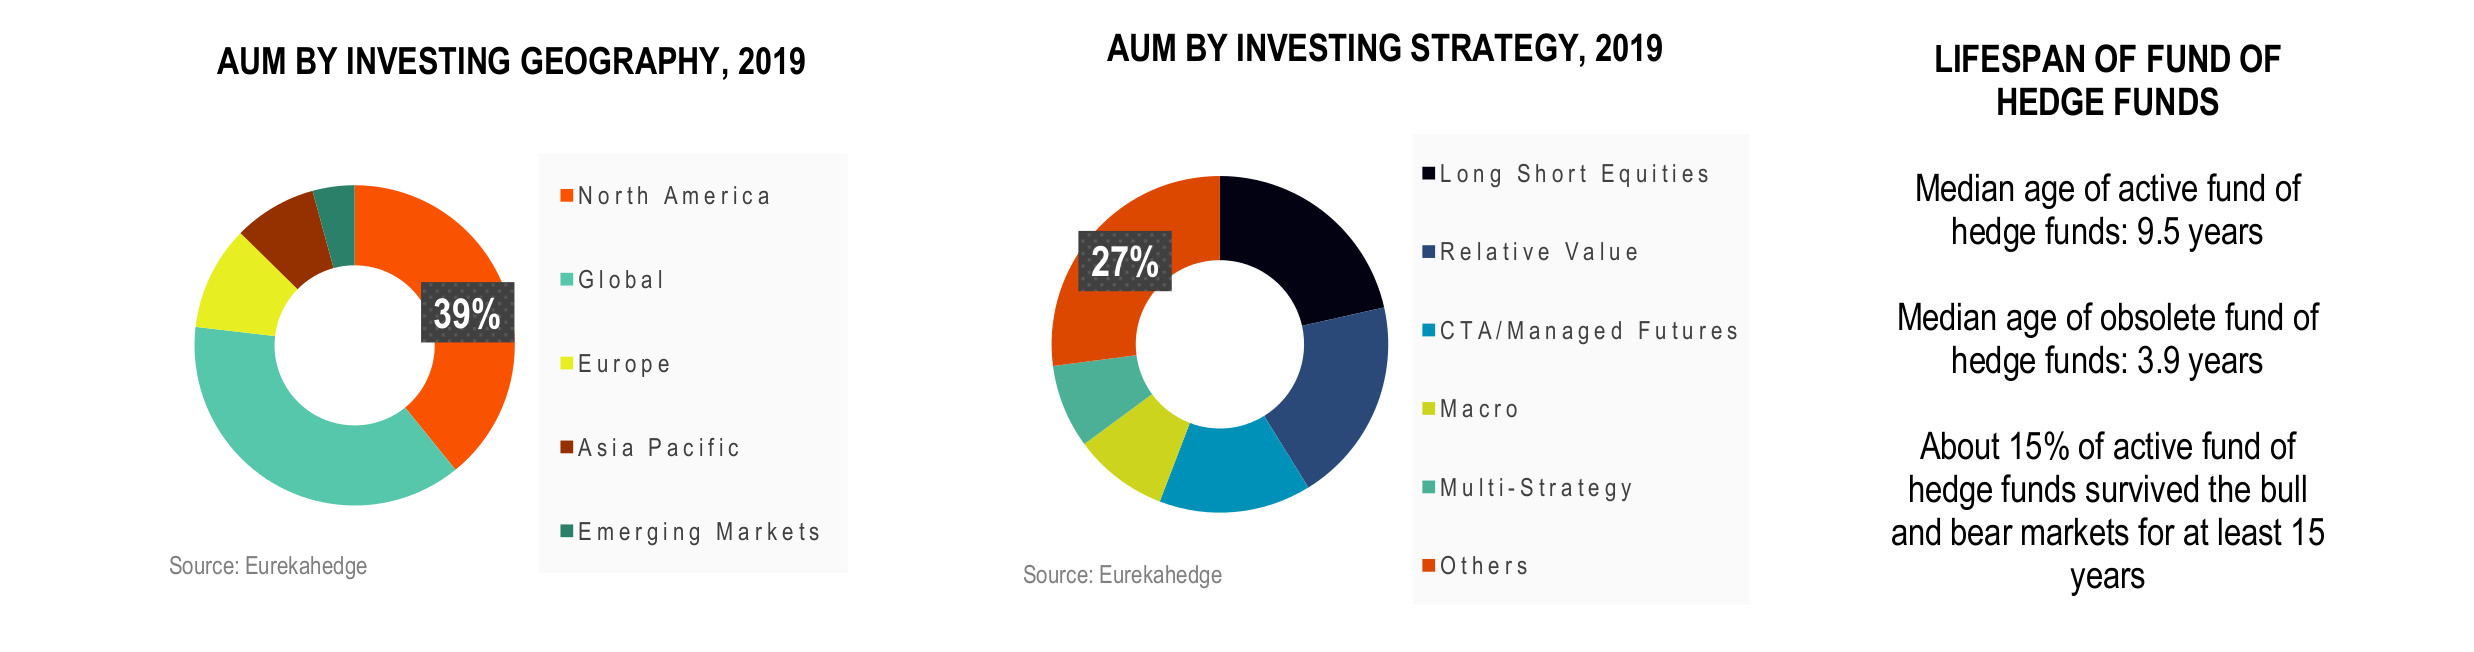 Funds of Hedge Funds Infographic April 2019 - AUM by investing geography and strategy 2019